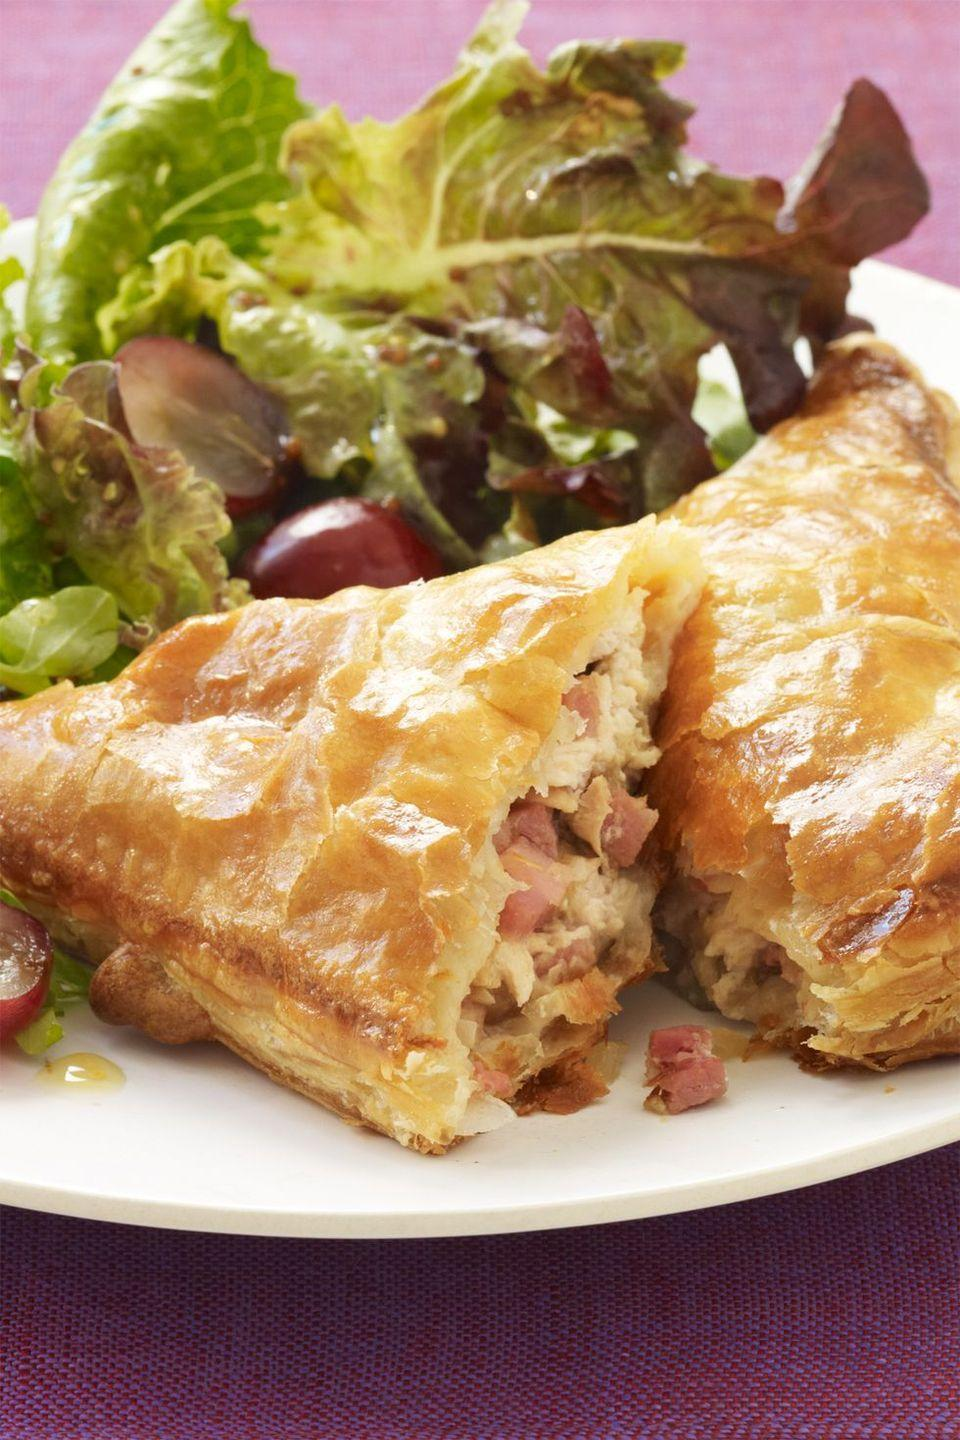 """<p>Nutty Gruyère, thyme, and mustard set the tone for these flavorful and delicious pastry pockets.</p><p><em><a href=""""https://womansday.com/food-recipes/food-drinks/recipes/a12411/ham-turkey-cheese-turnover-recipe-wdy1113/"""" rel=""""nofollow noopener"""" target=""""_blank"""" data-ylk=""""slk:Get the recipe from Woman's Day »"""" class=""""link rapid-noclick-resp"""">Get the recipe from Woman's Day »</a></em></p><p><strong>RELATED: </strong><a href=""""https://www.goodhousekeeping.com/food-recipes/g982/recipe-ideas-leftover-ham/"""" rel=""""nofollow noopener"""" target=""""_blank"""" data-ylk=""""slk:20+ Leftover Ham Recipes That Are Anything Bsut Boring"""" class=""""link rapid-noclick-resp"""">20+ Leftover Ham Recipes That Are Anything Bsut Boring</a></p>"""